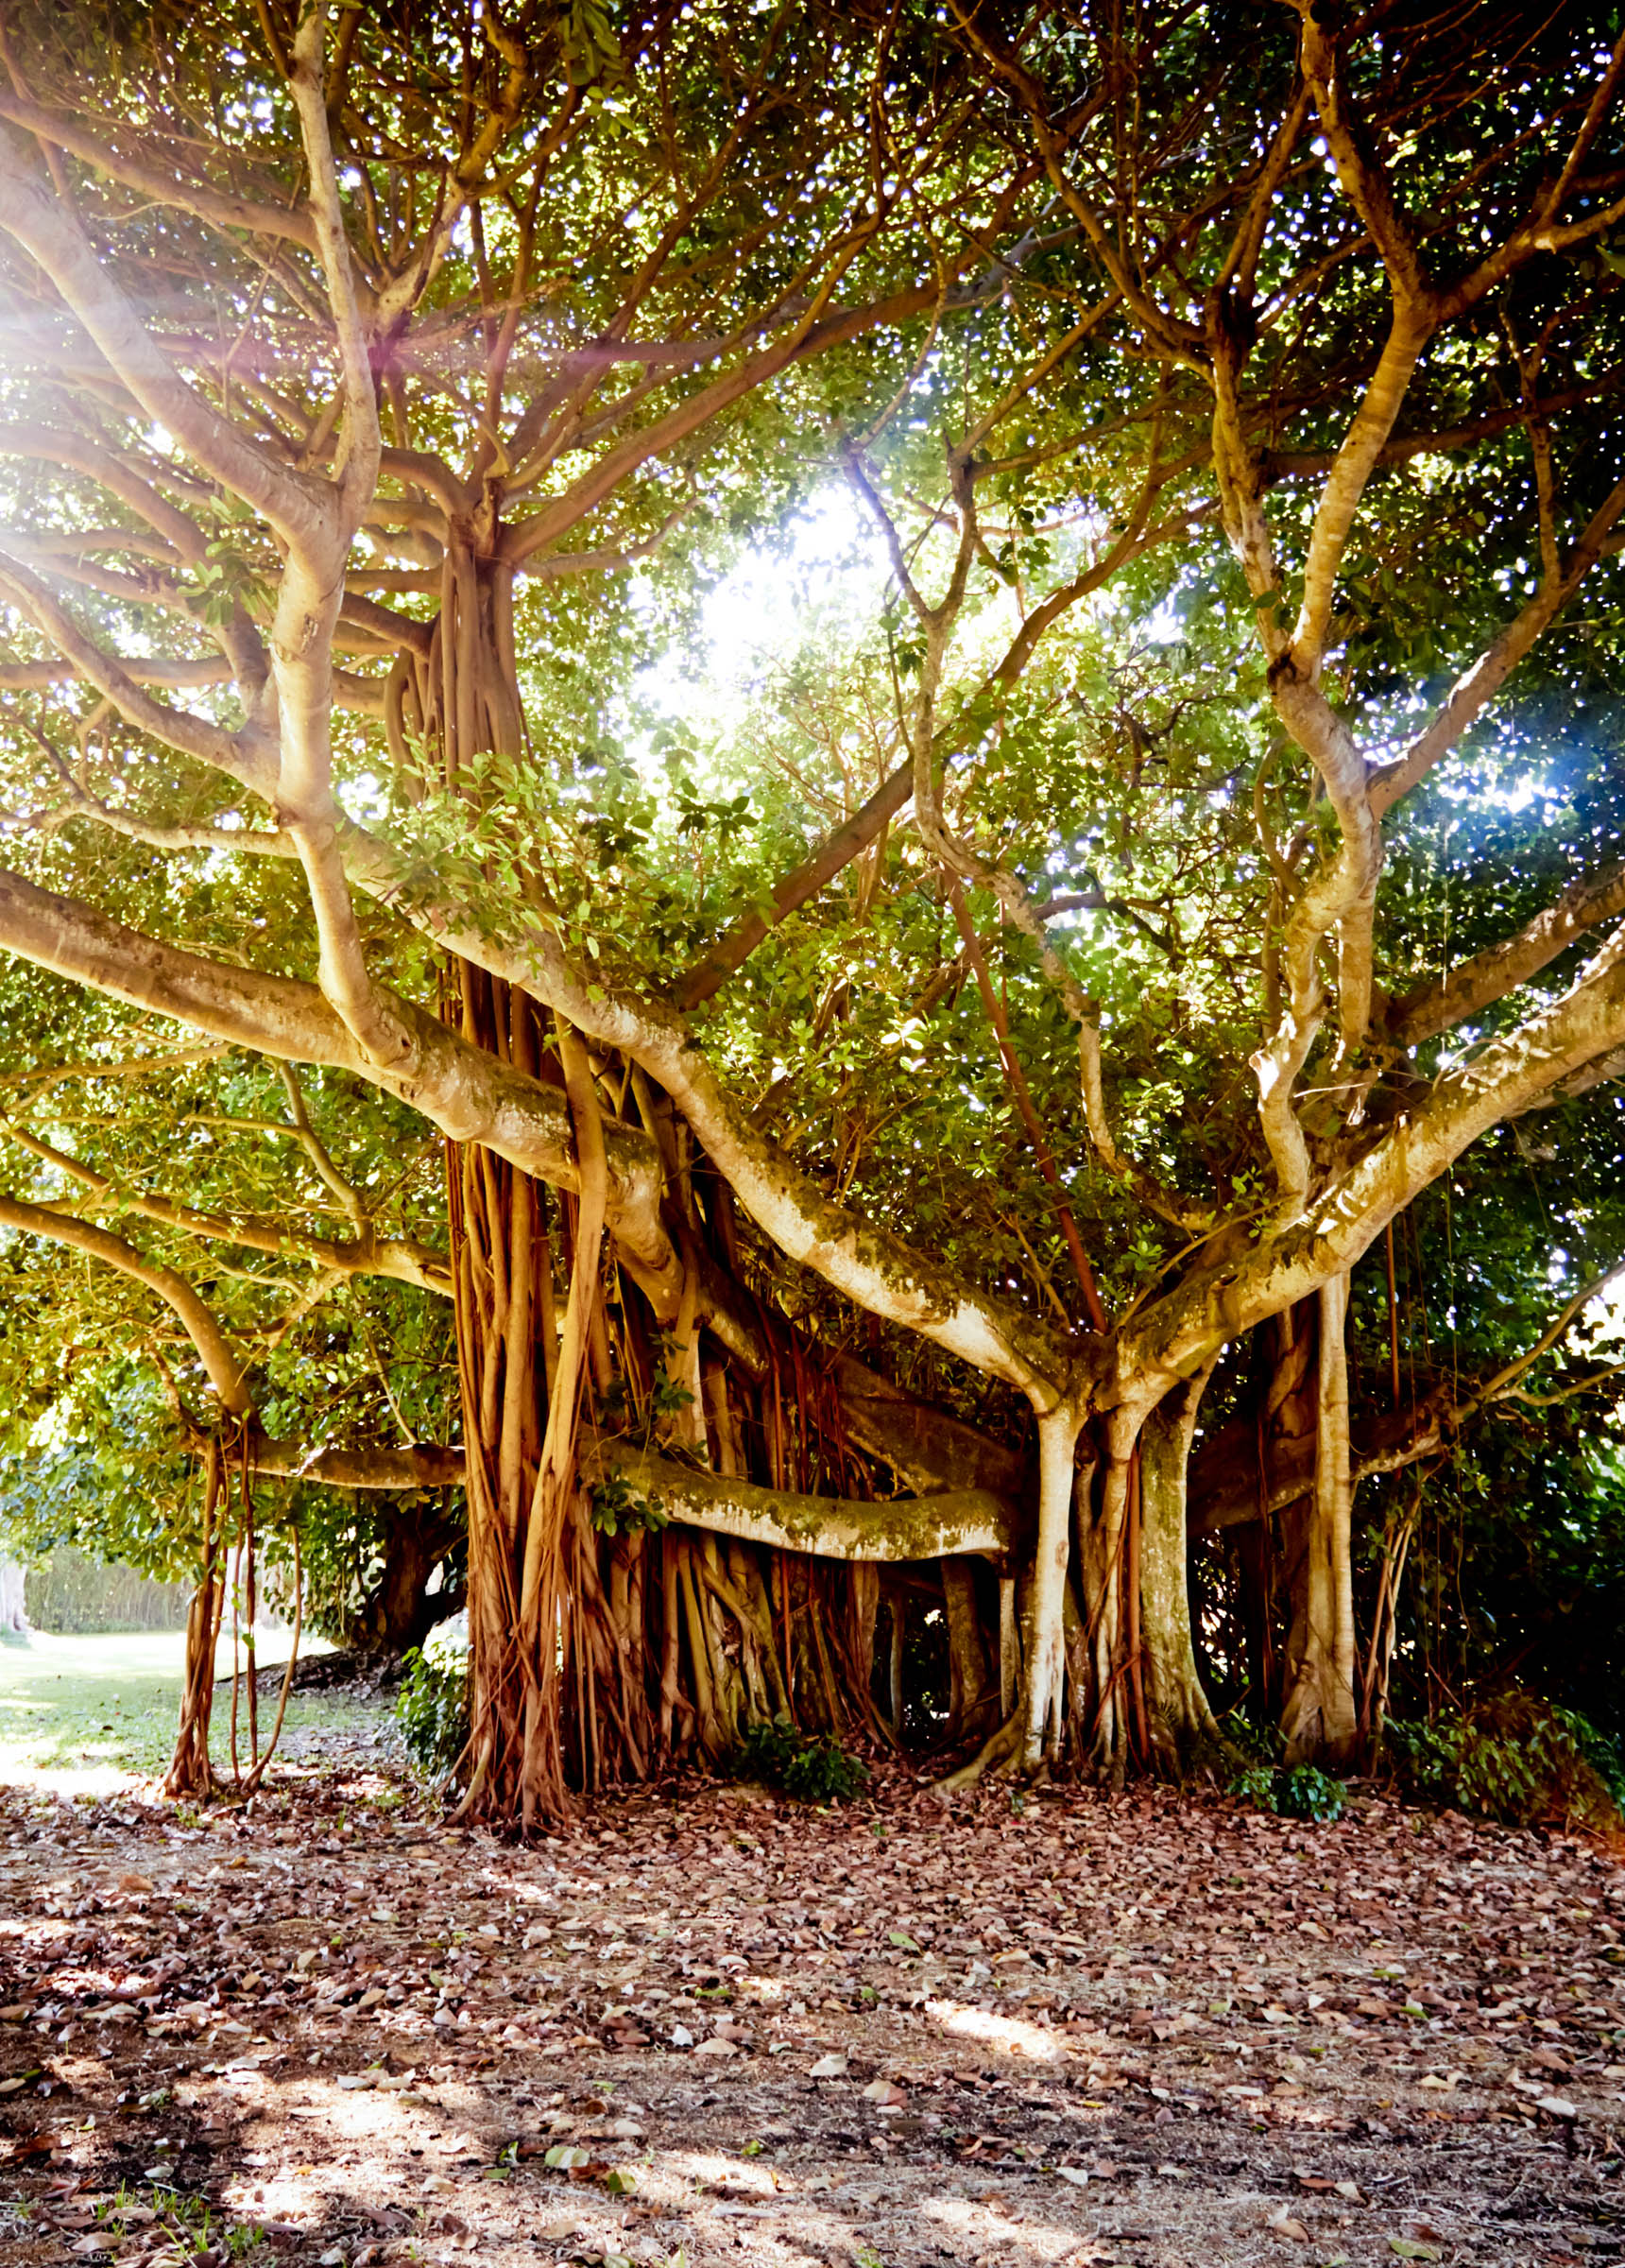 banyan tree in southern Florida